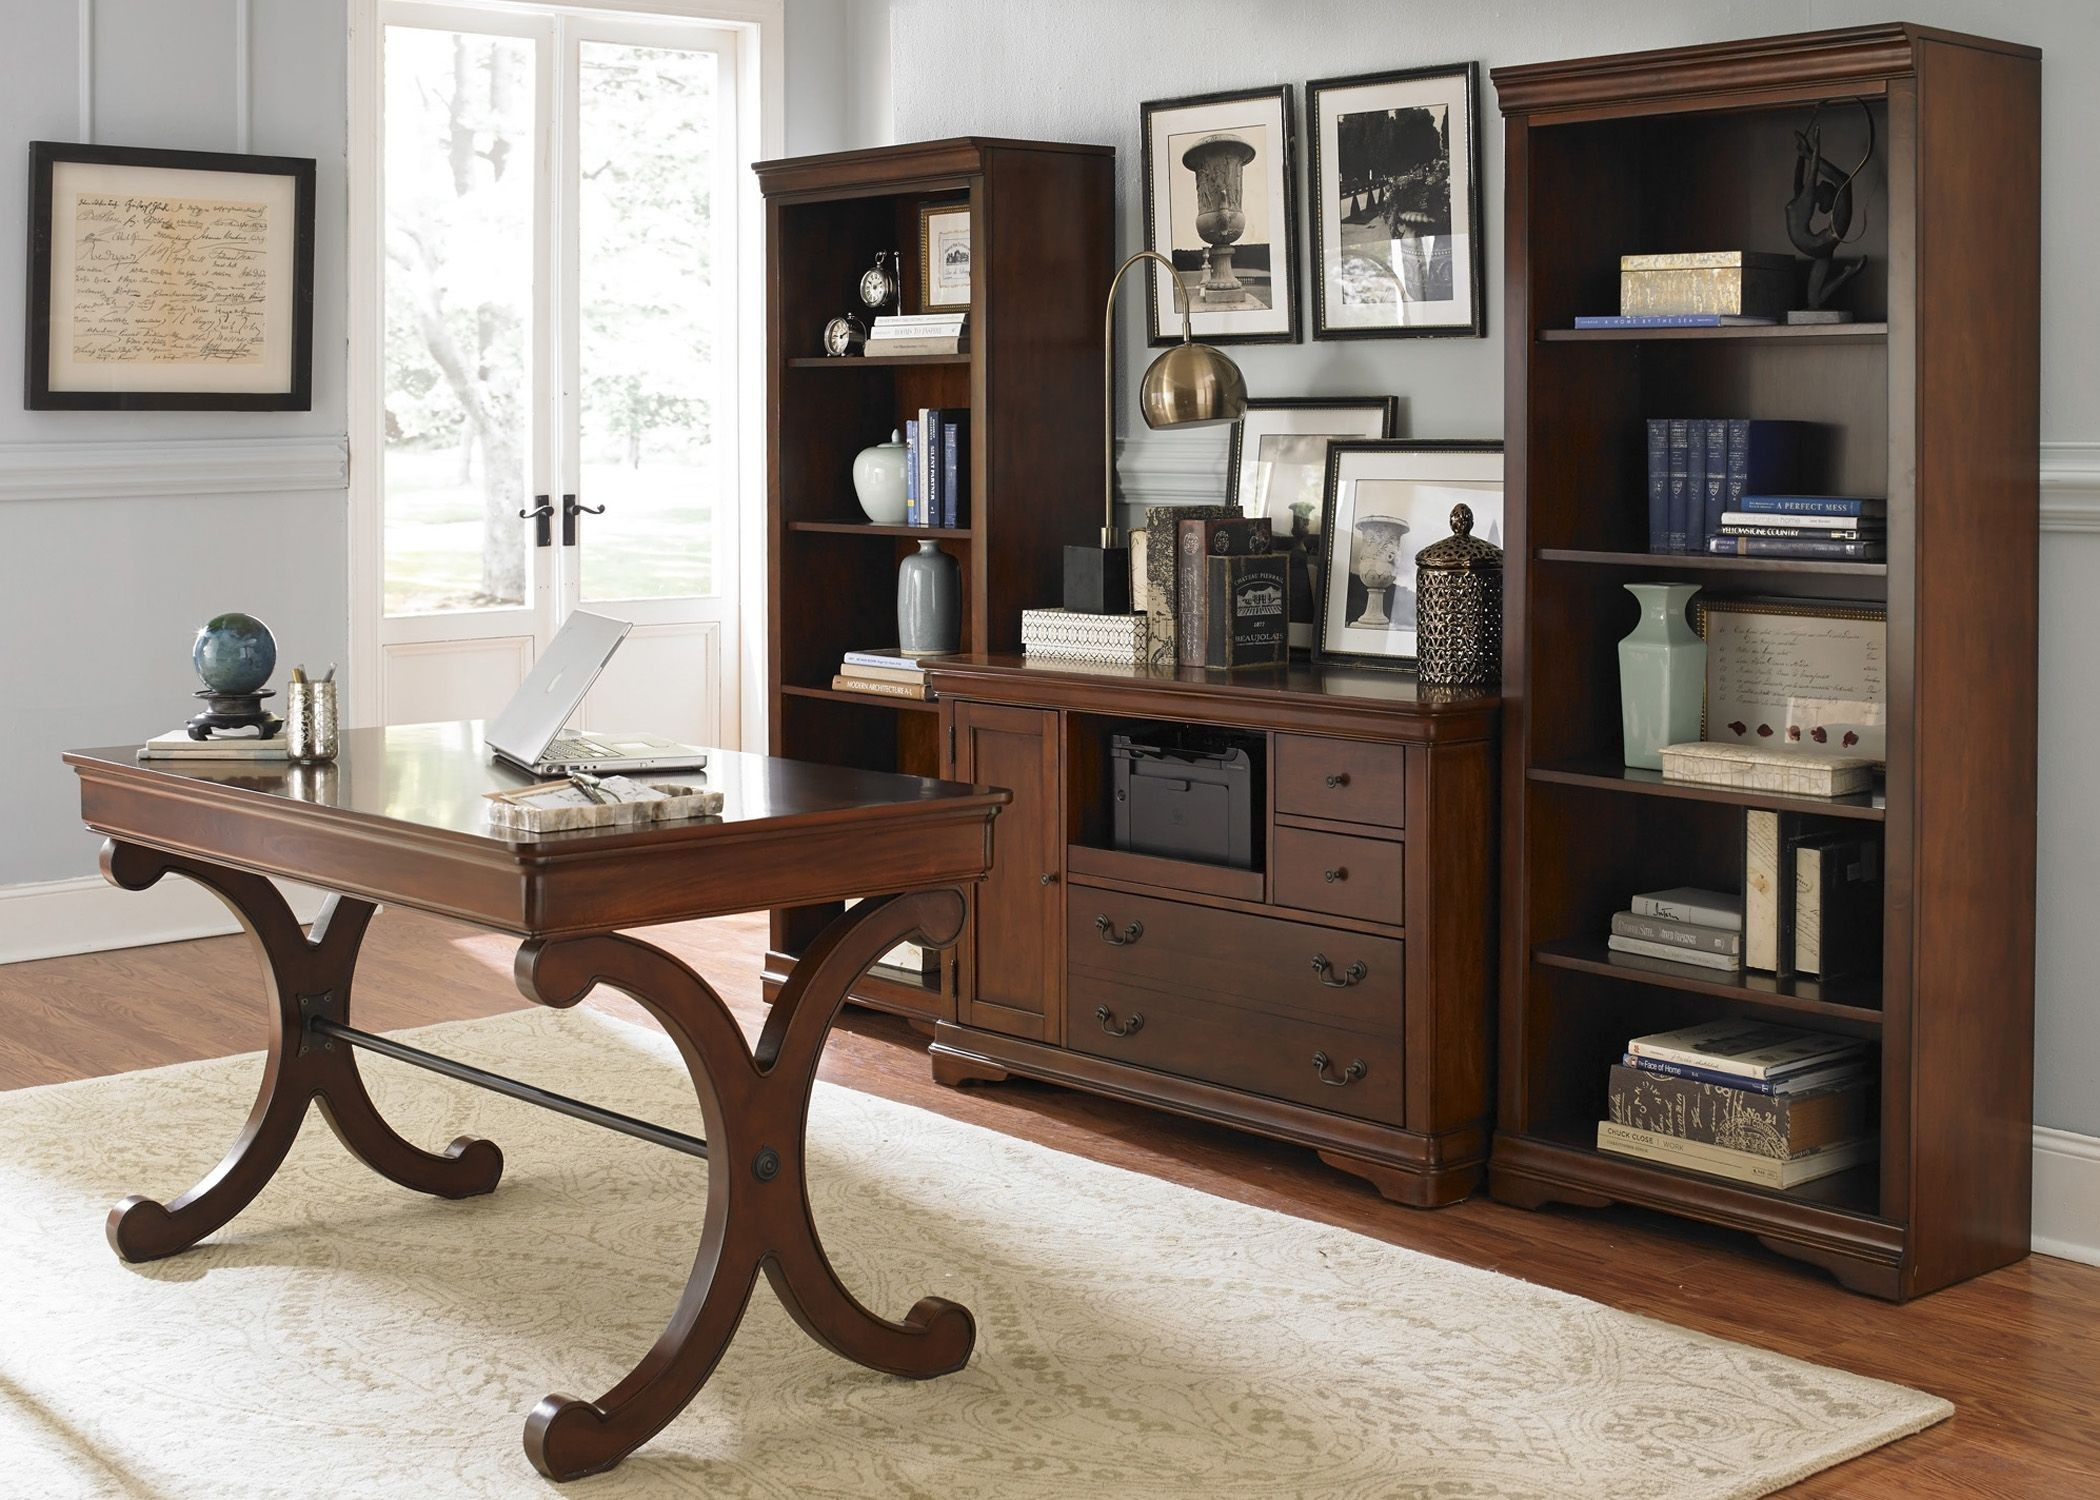 Home Office Sets Office Furniture Elements: Harbor Ridge Rustic Cherry Home Office Set From Liberty